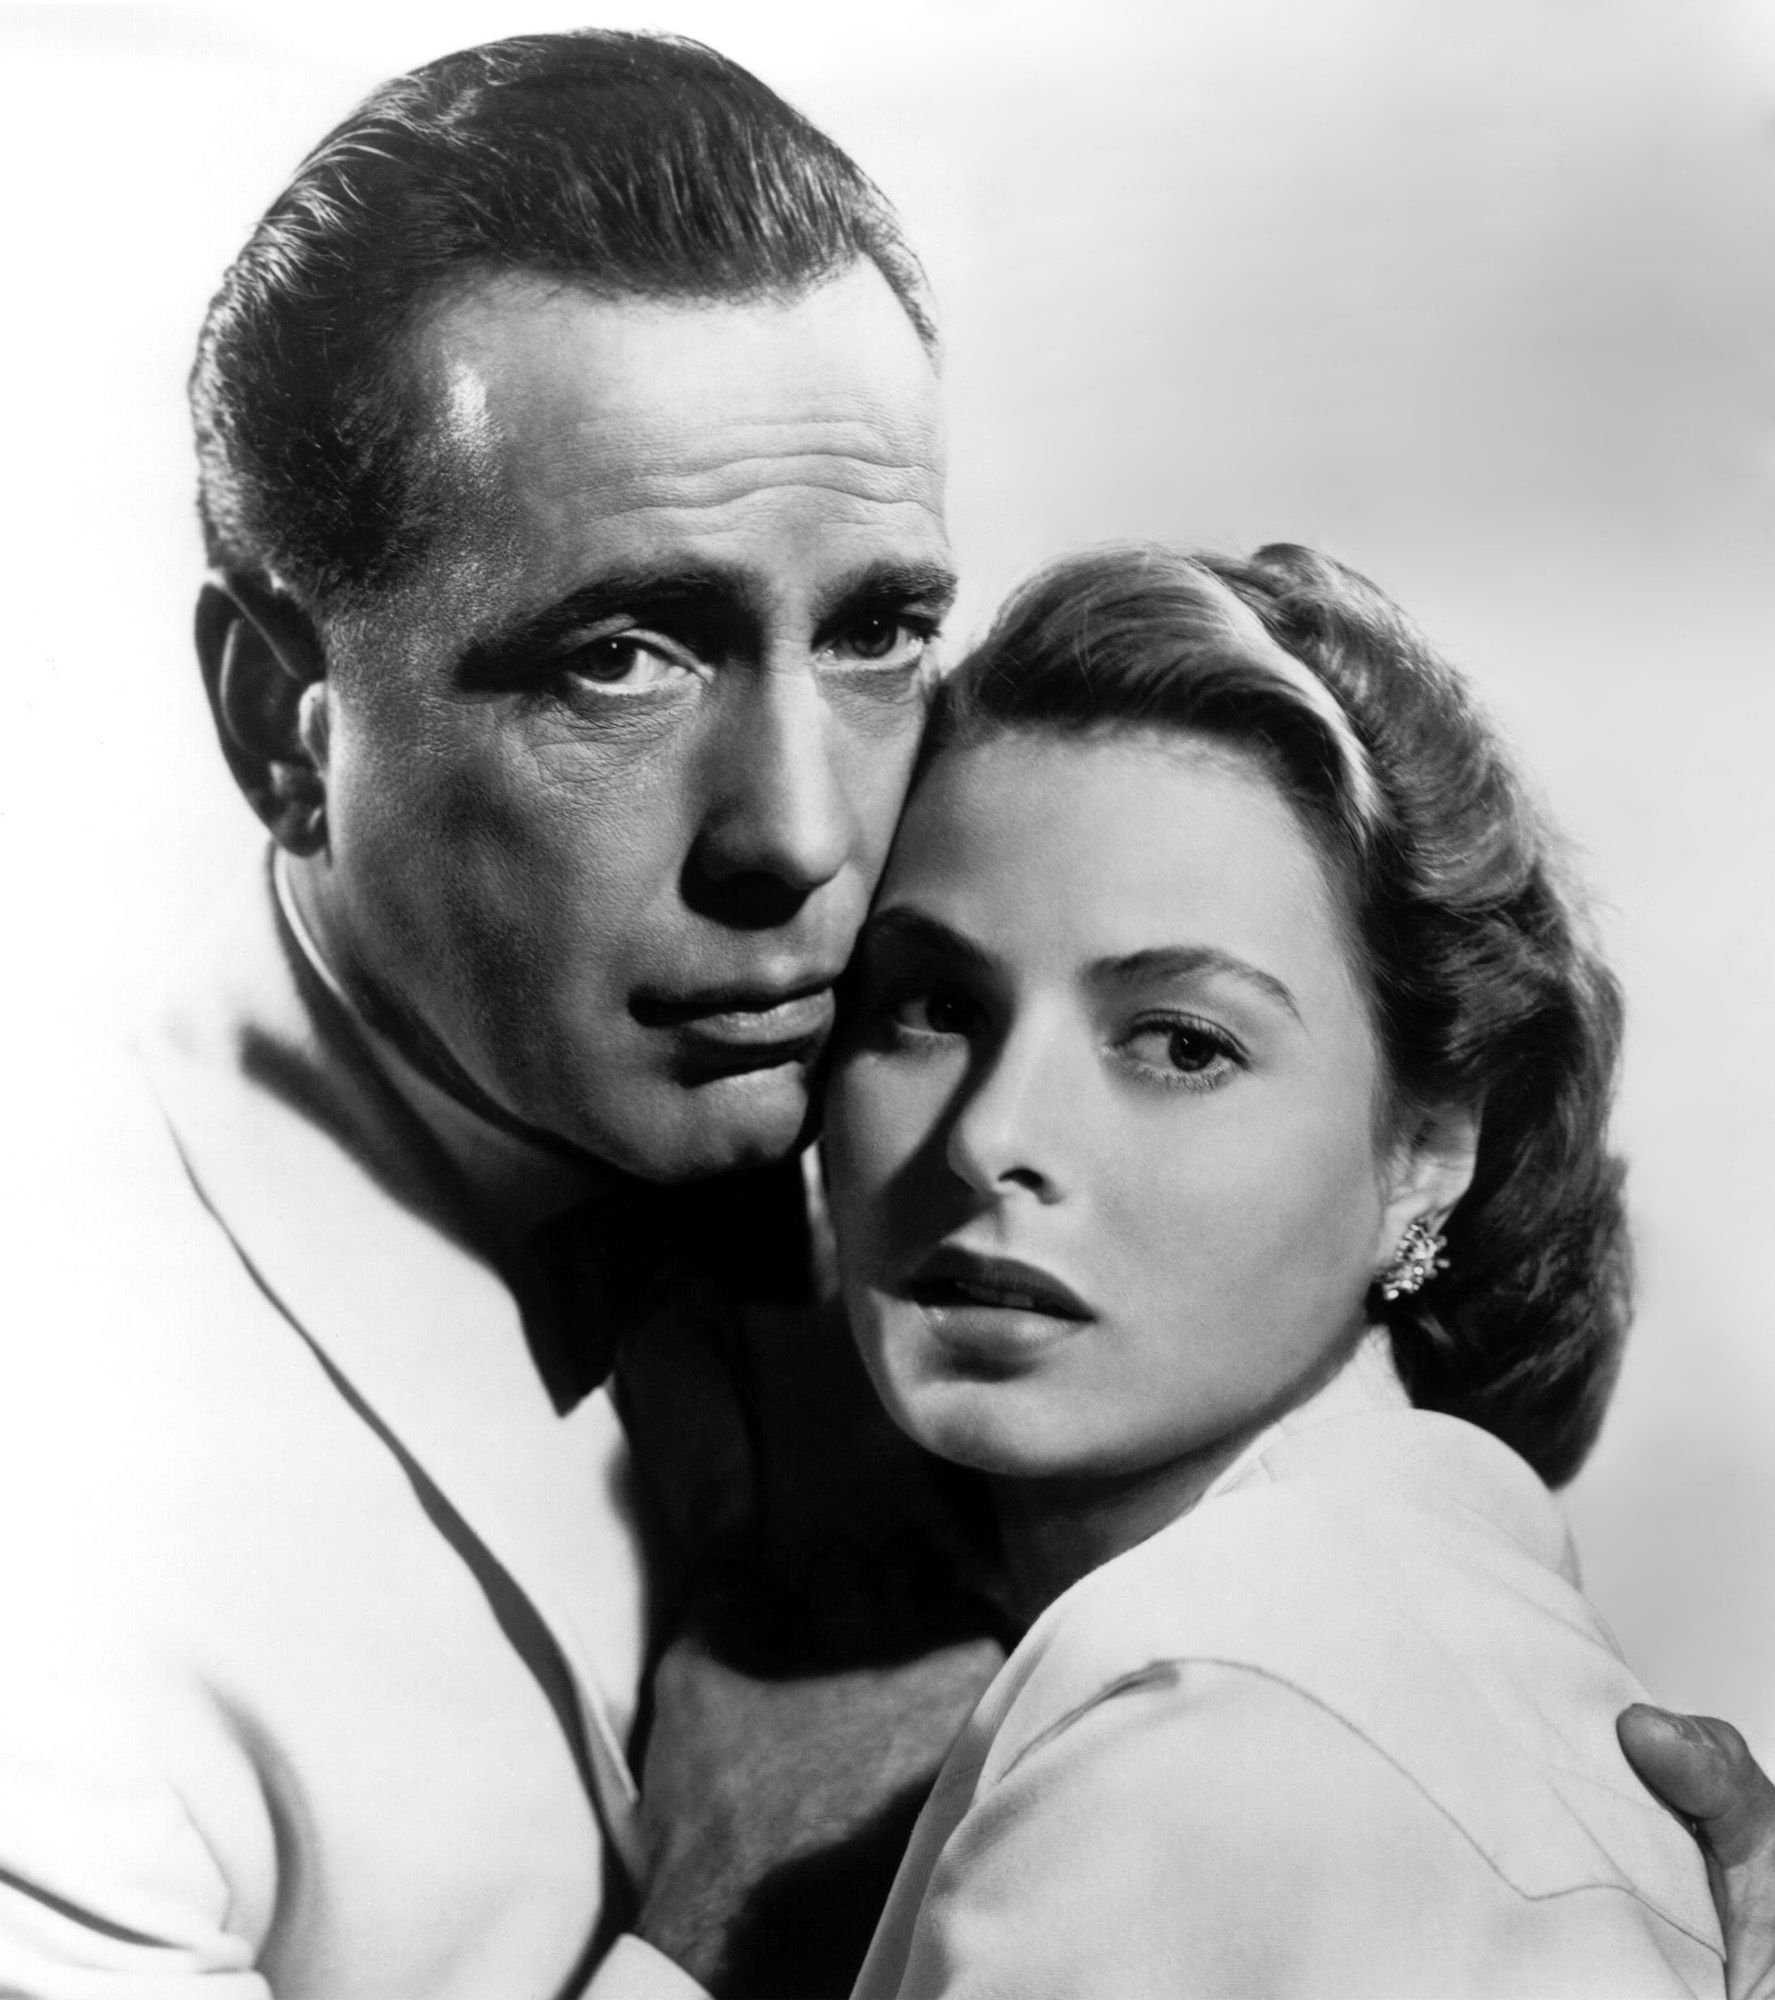 Humphrey Bogart and Ingrid Bergman - Casablanca (Michael Curtiz, 1942)